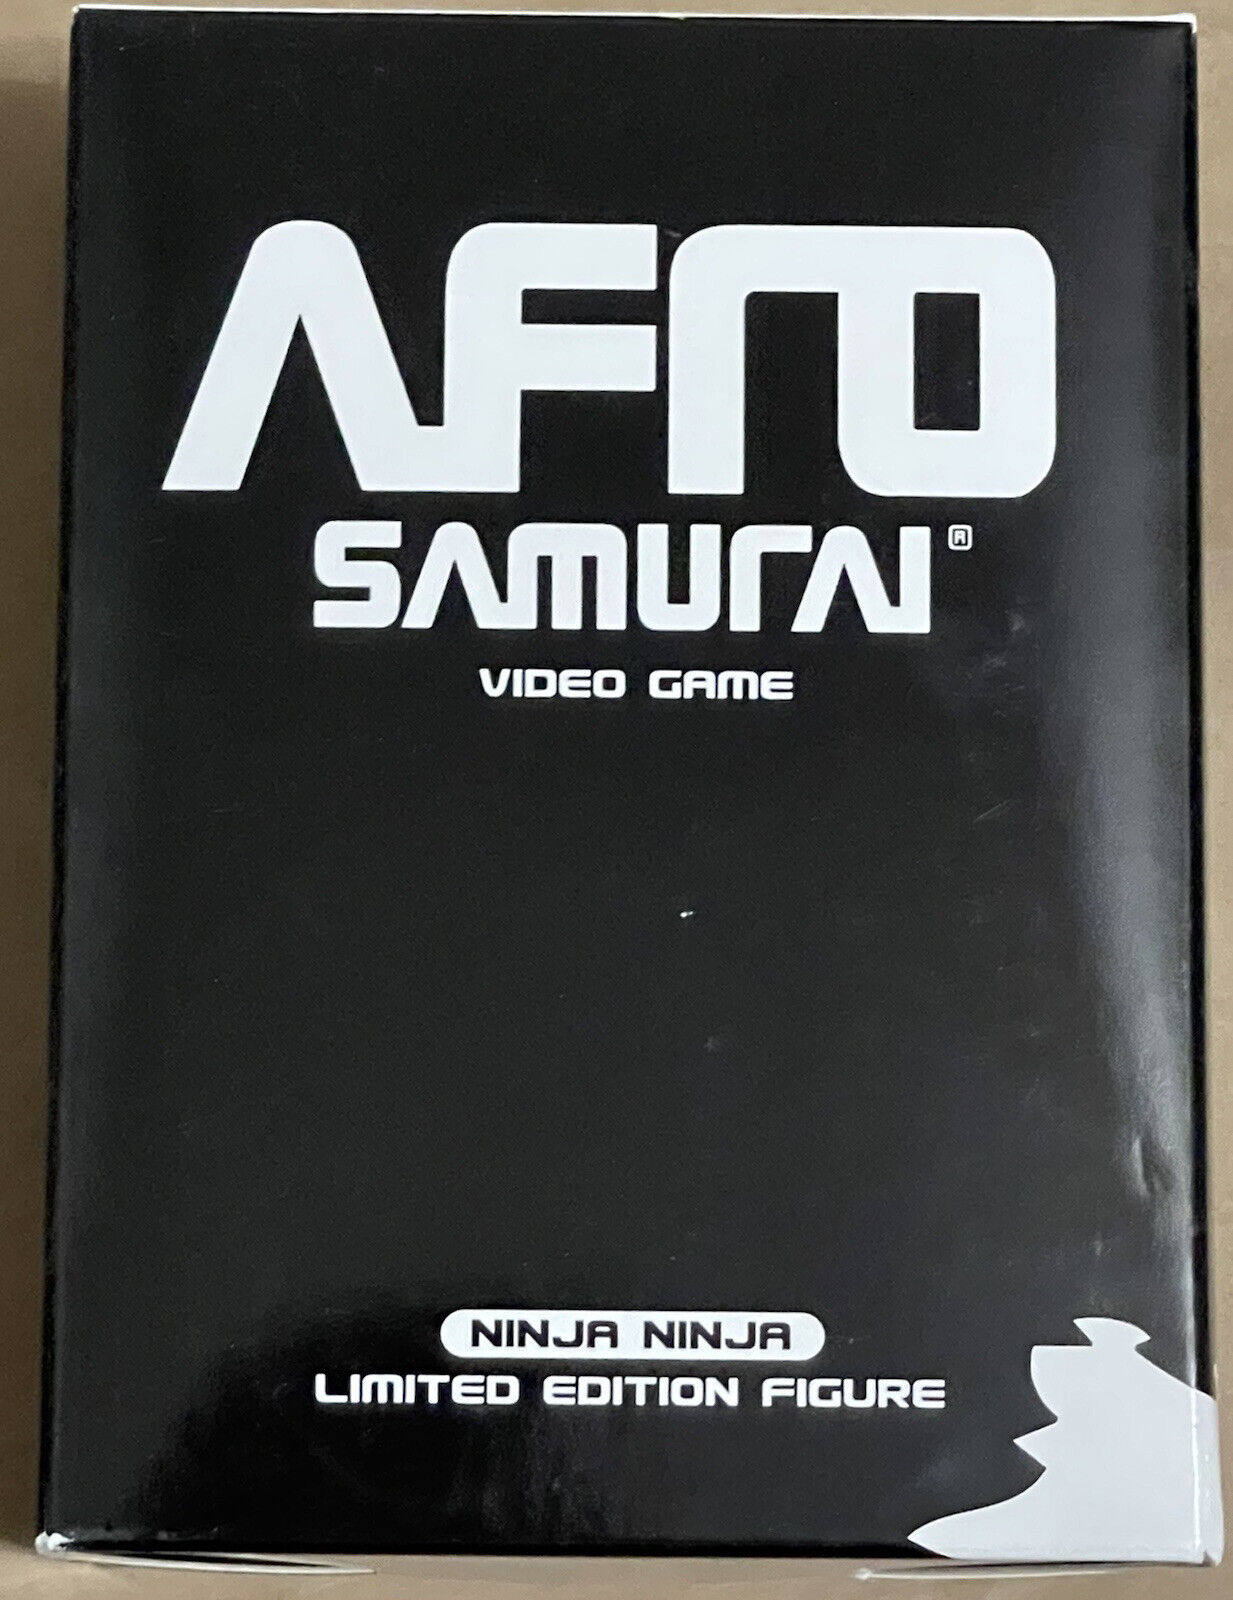 Afro Samurai Video Game Limited Edition 2008 Promo Figure Never Opened #60024